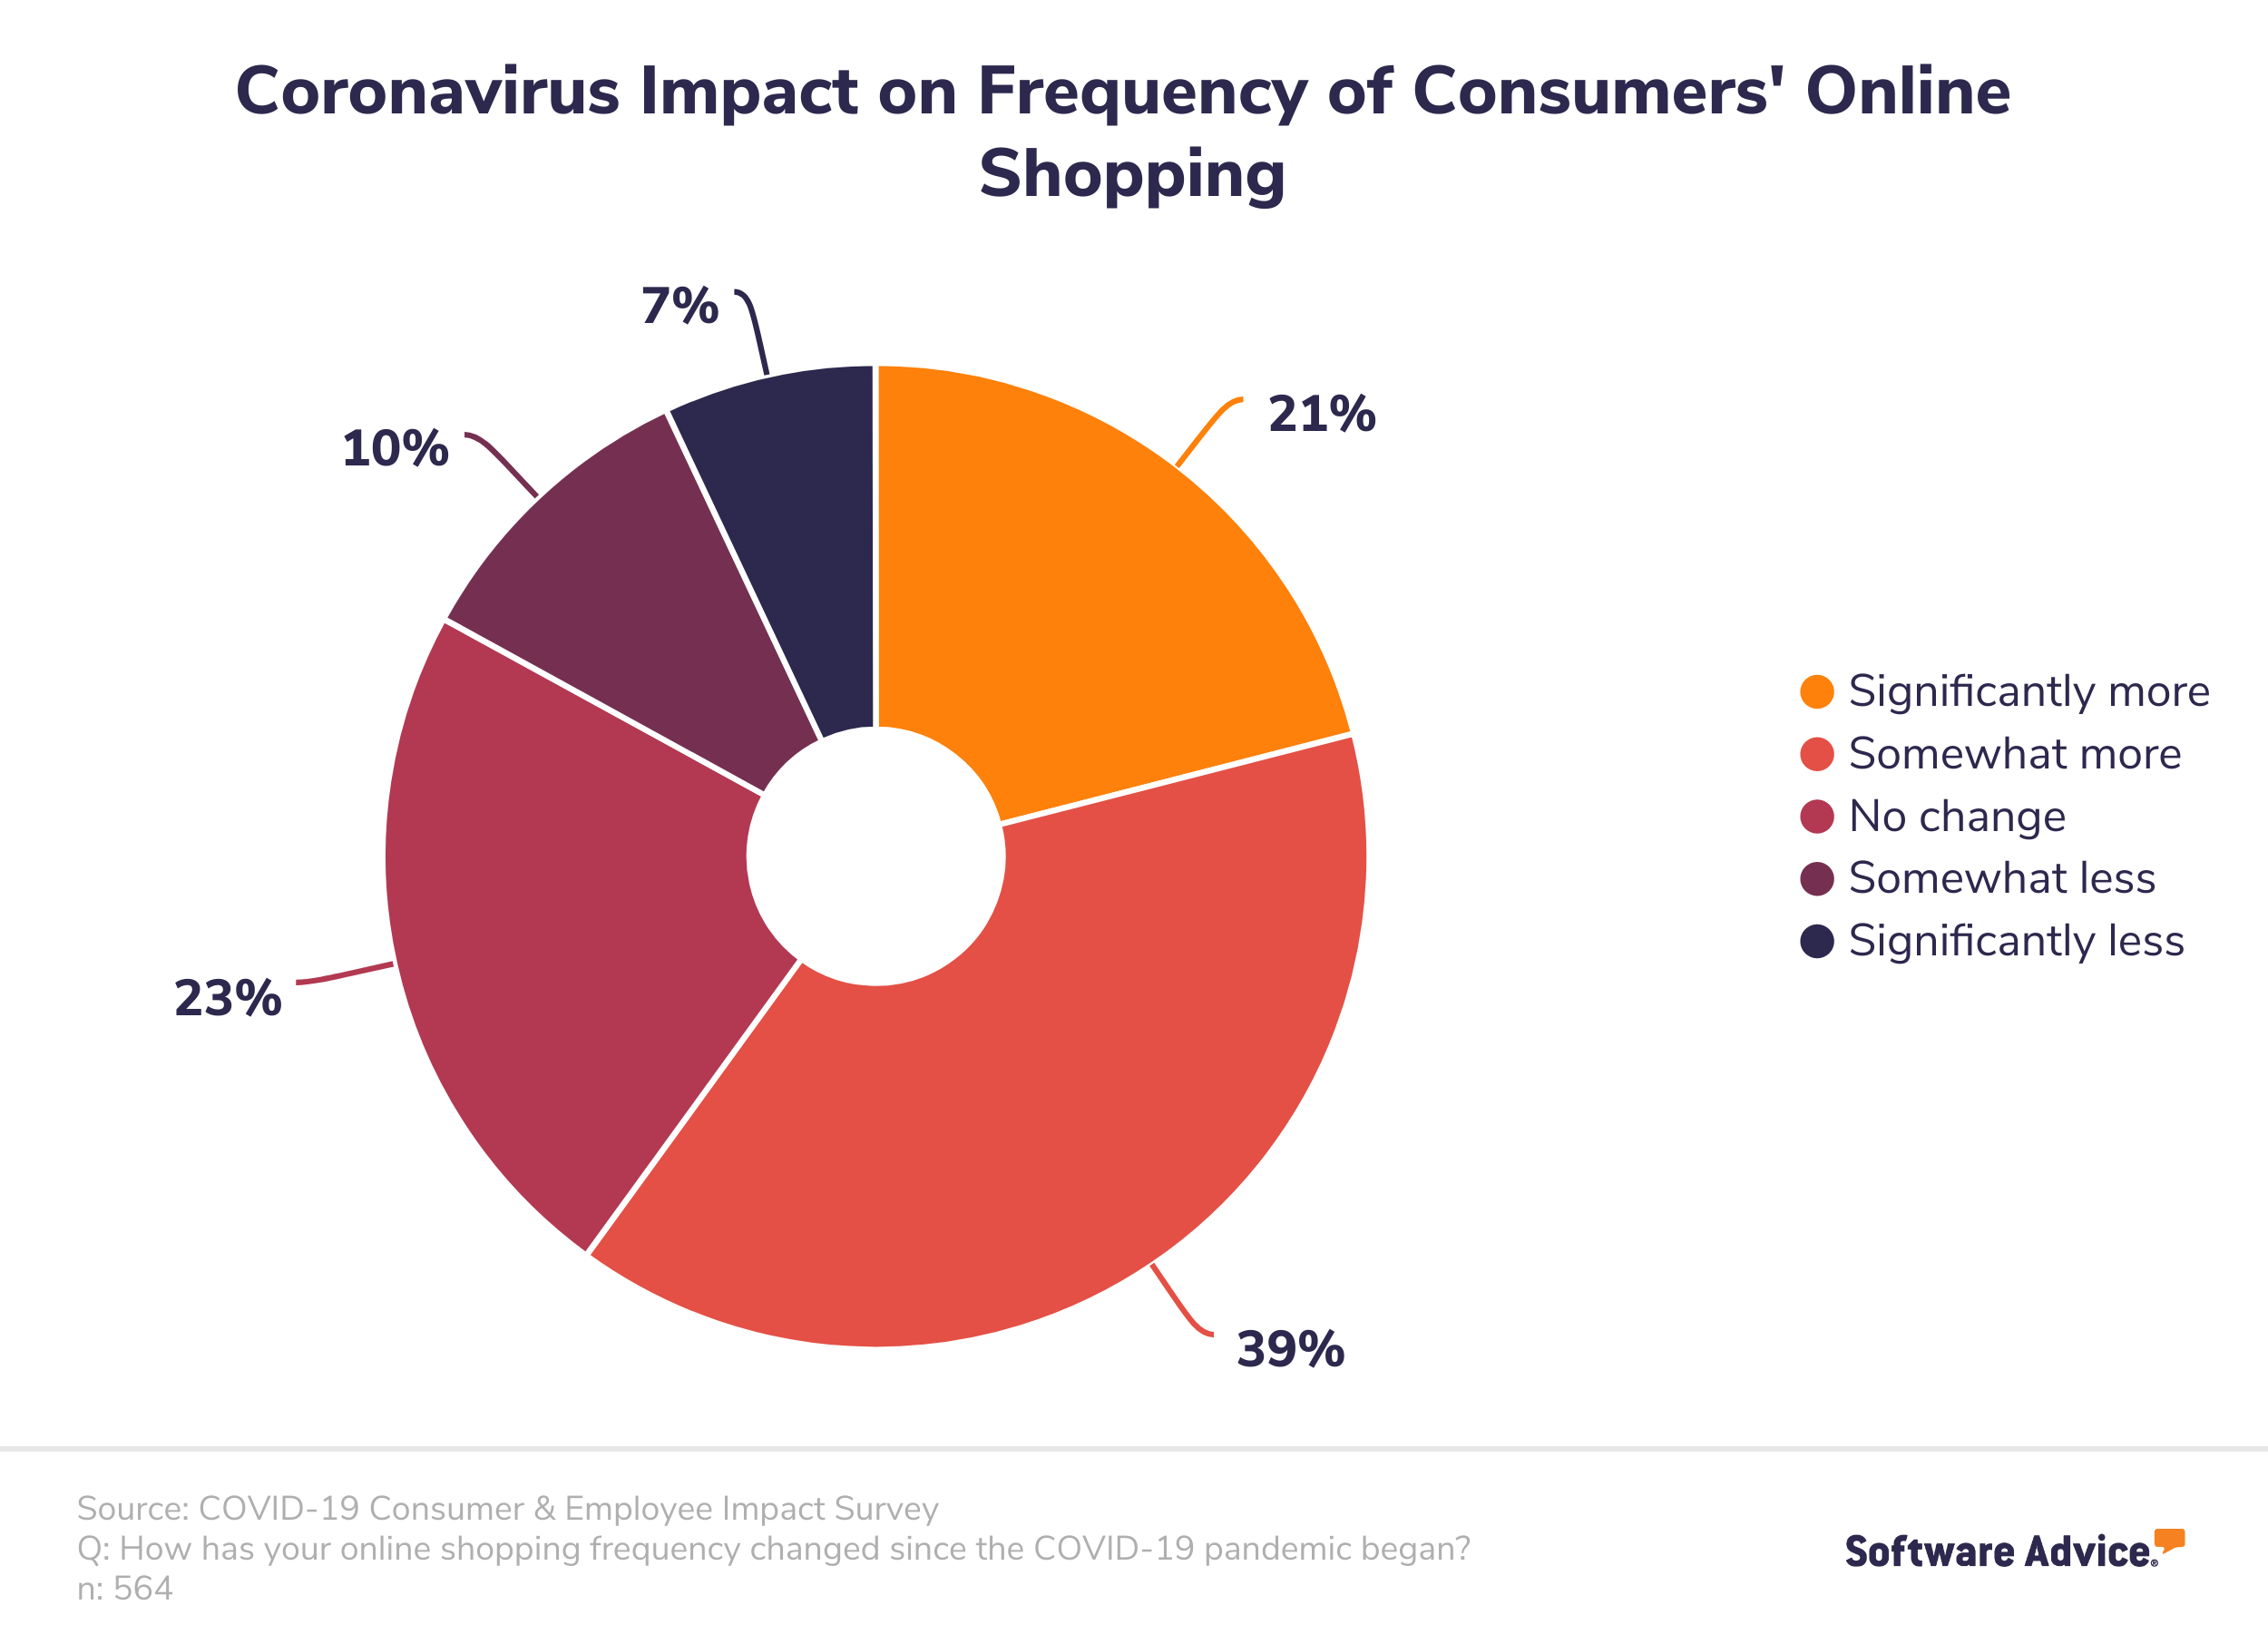 COVID increased frequency of online shopping